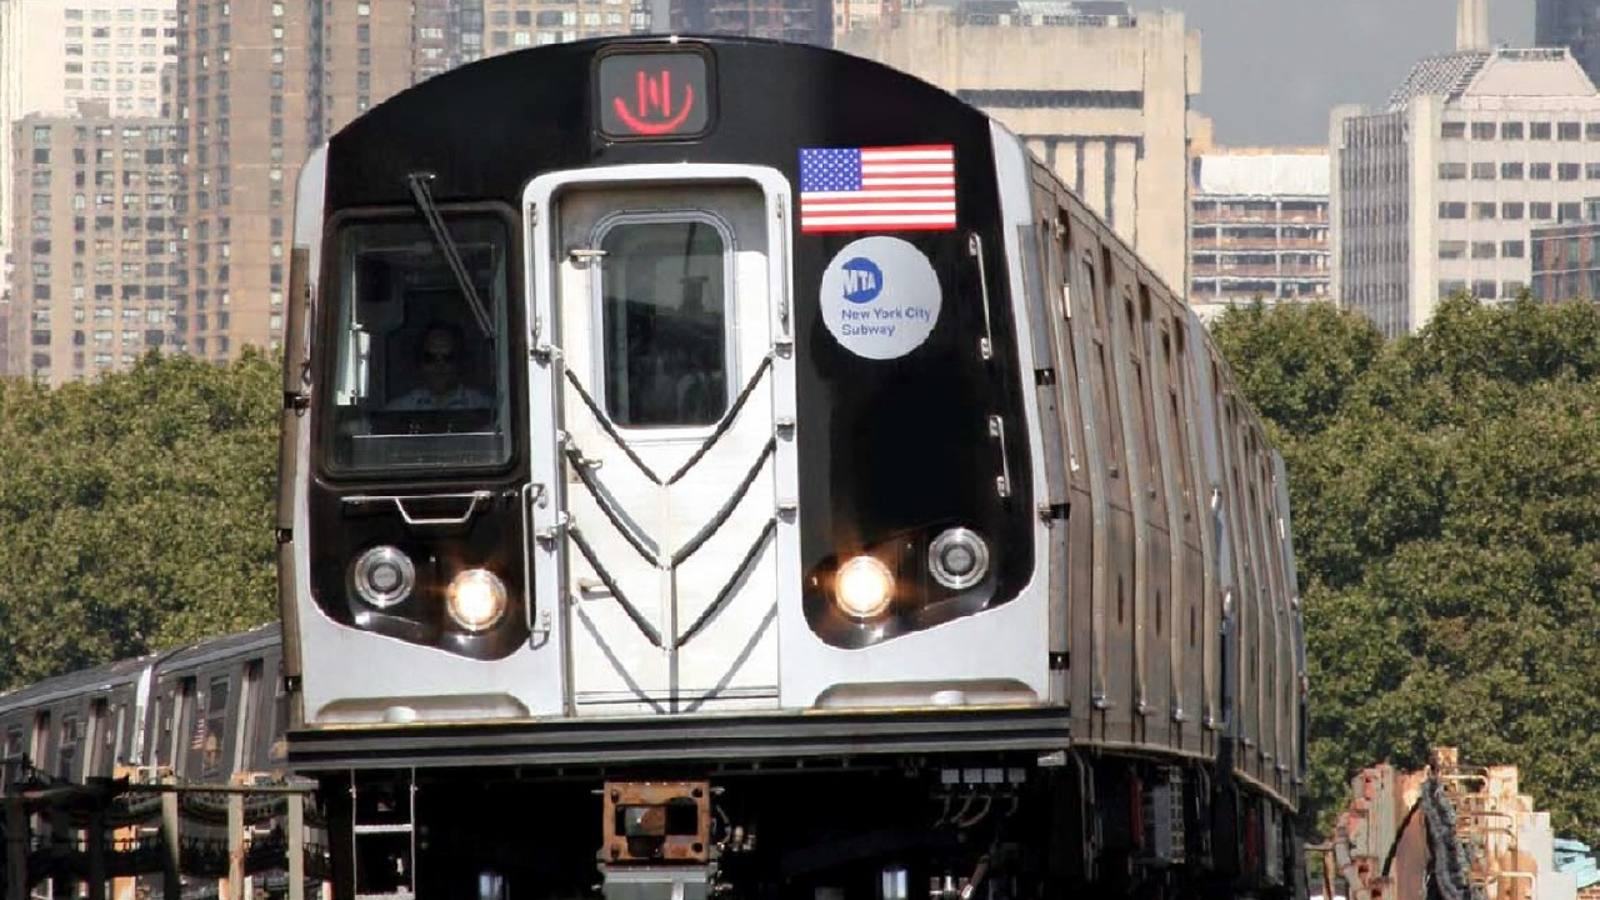 Japan's Kawasaki Heavy Industries builds trains for U.S. cities including New York and Washington.